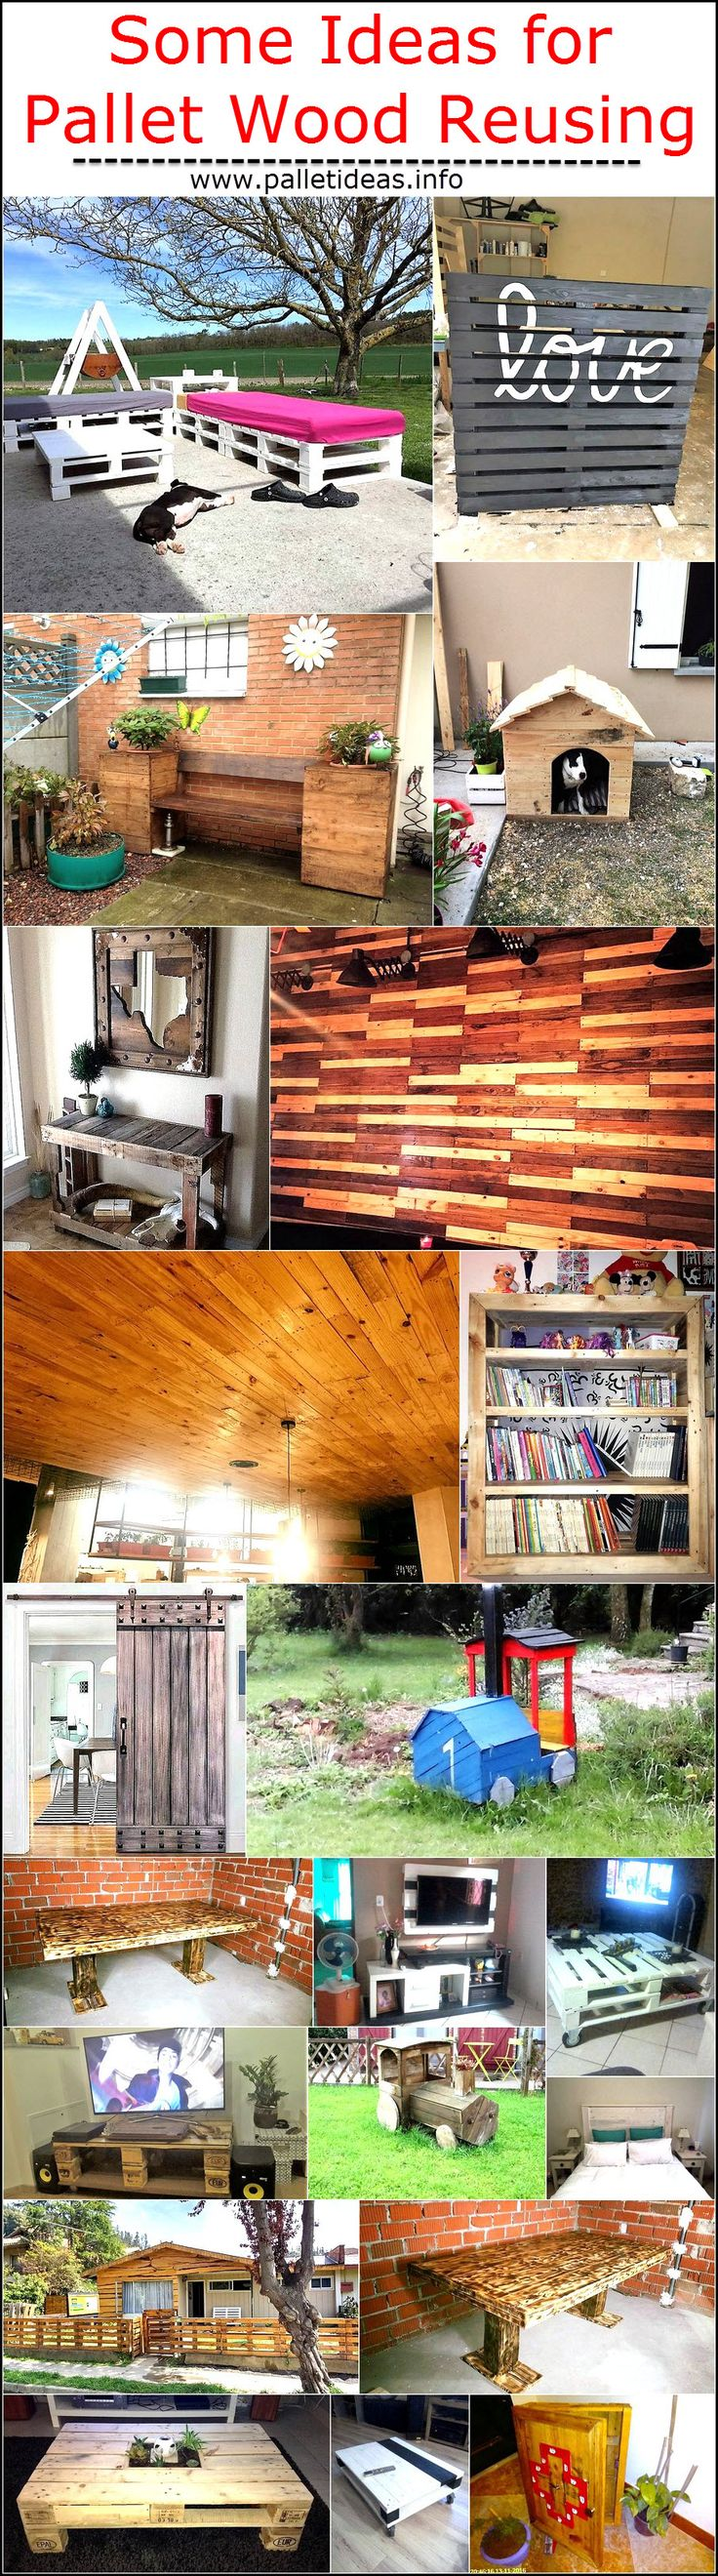 Wooden transport pallets have become increasingly popular for diy - We Have Always Emphasized On Recycling The Shipping Wood Pallets Here We Have Brought You